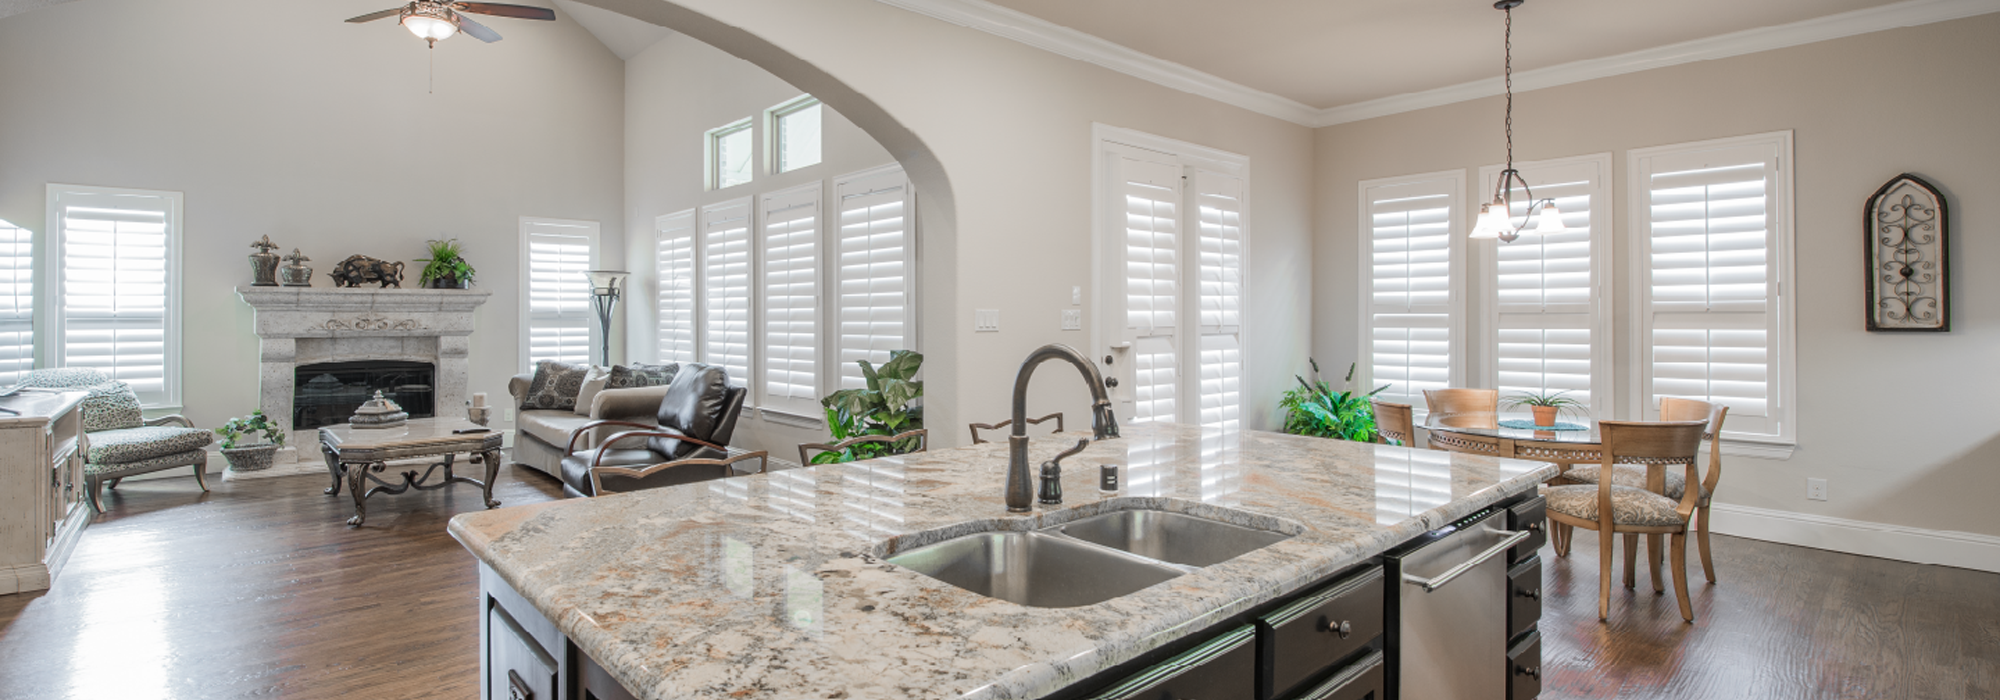 Remodel Kitchen with Southwest Shutters in Phoenix